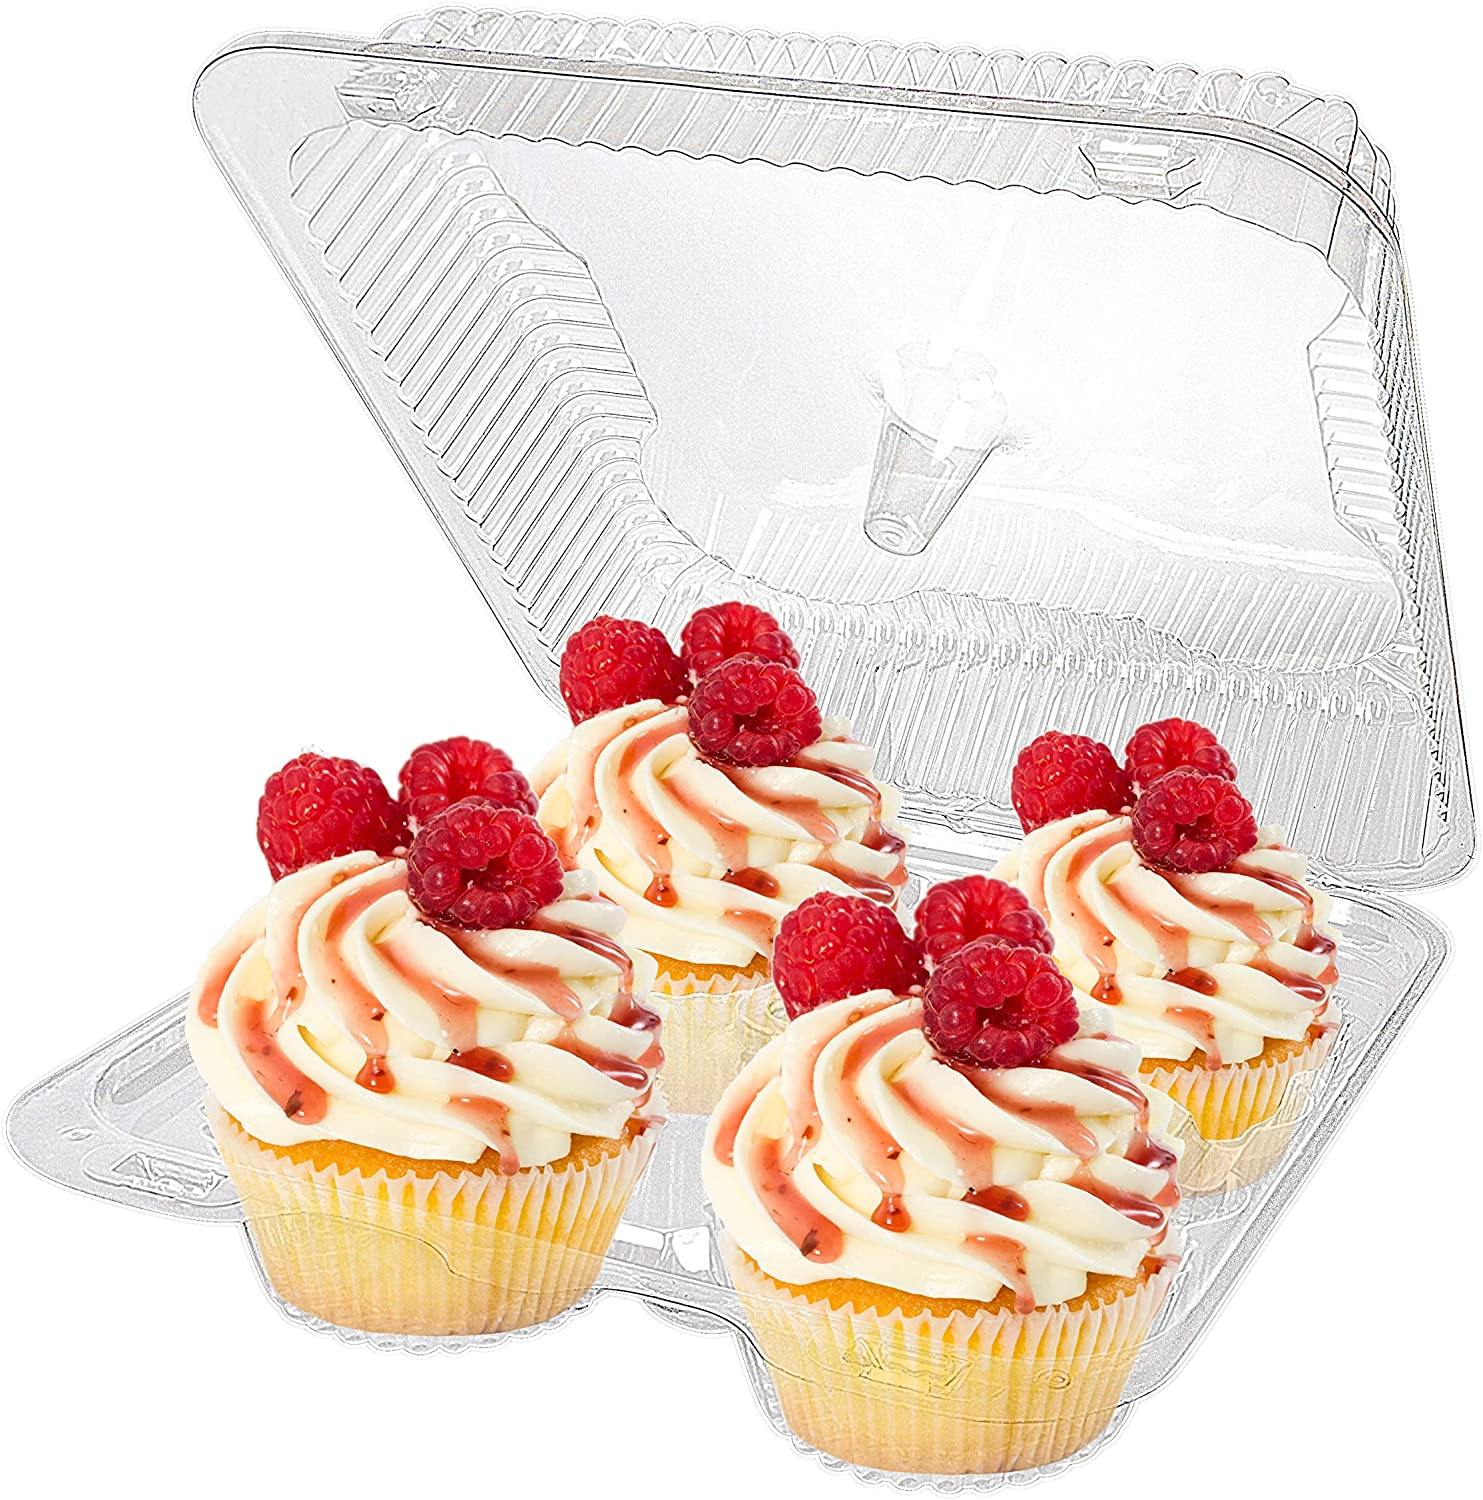 Stock Your Home 4-Compartment Disposable Containers (40 Count) - Plastic Cupcake Containers - Disposable Trays for Cupcakes & Muffins - Hinged Lock Cupcake Clamshell - Deep Cups for Cupcake Storage